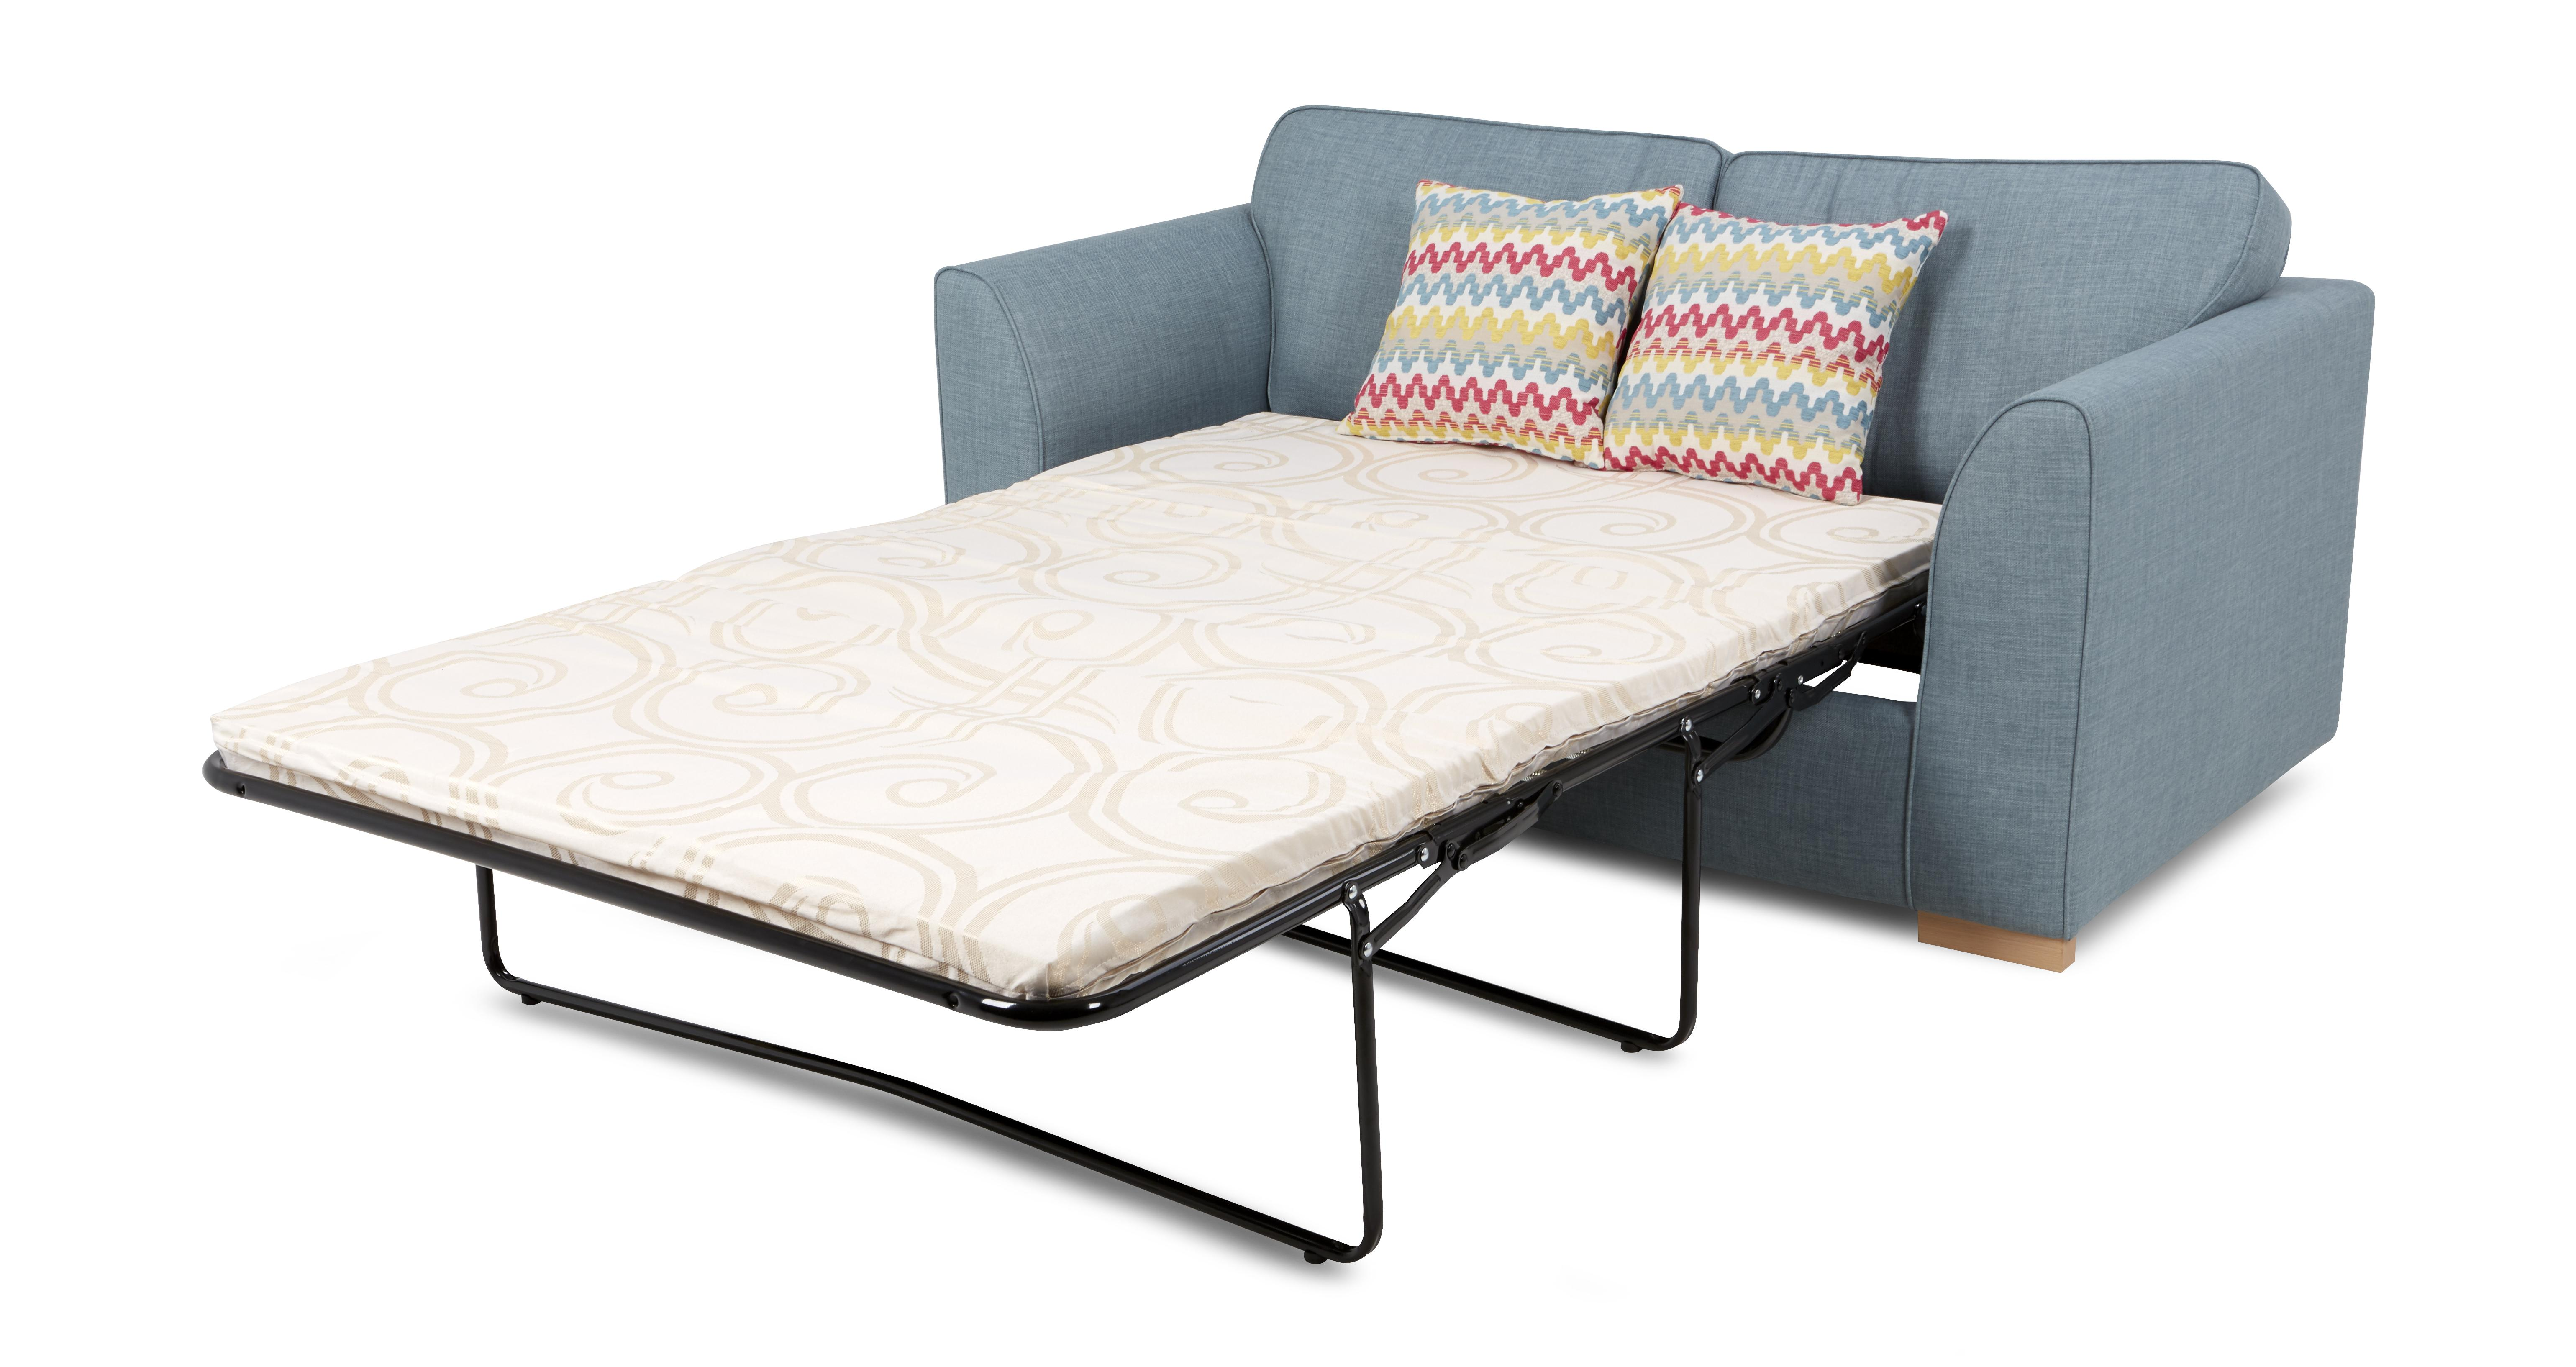 Sprint Clearance 2 Seater Sofa Bed Revive